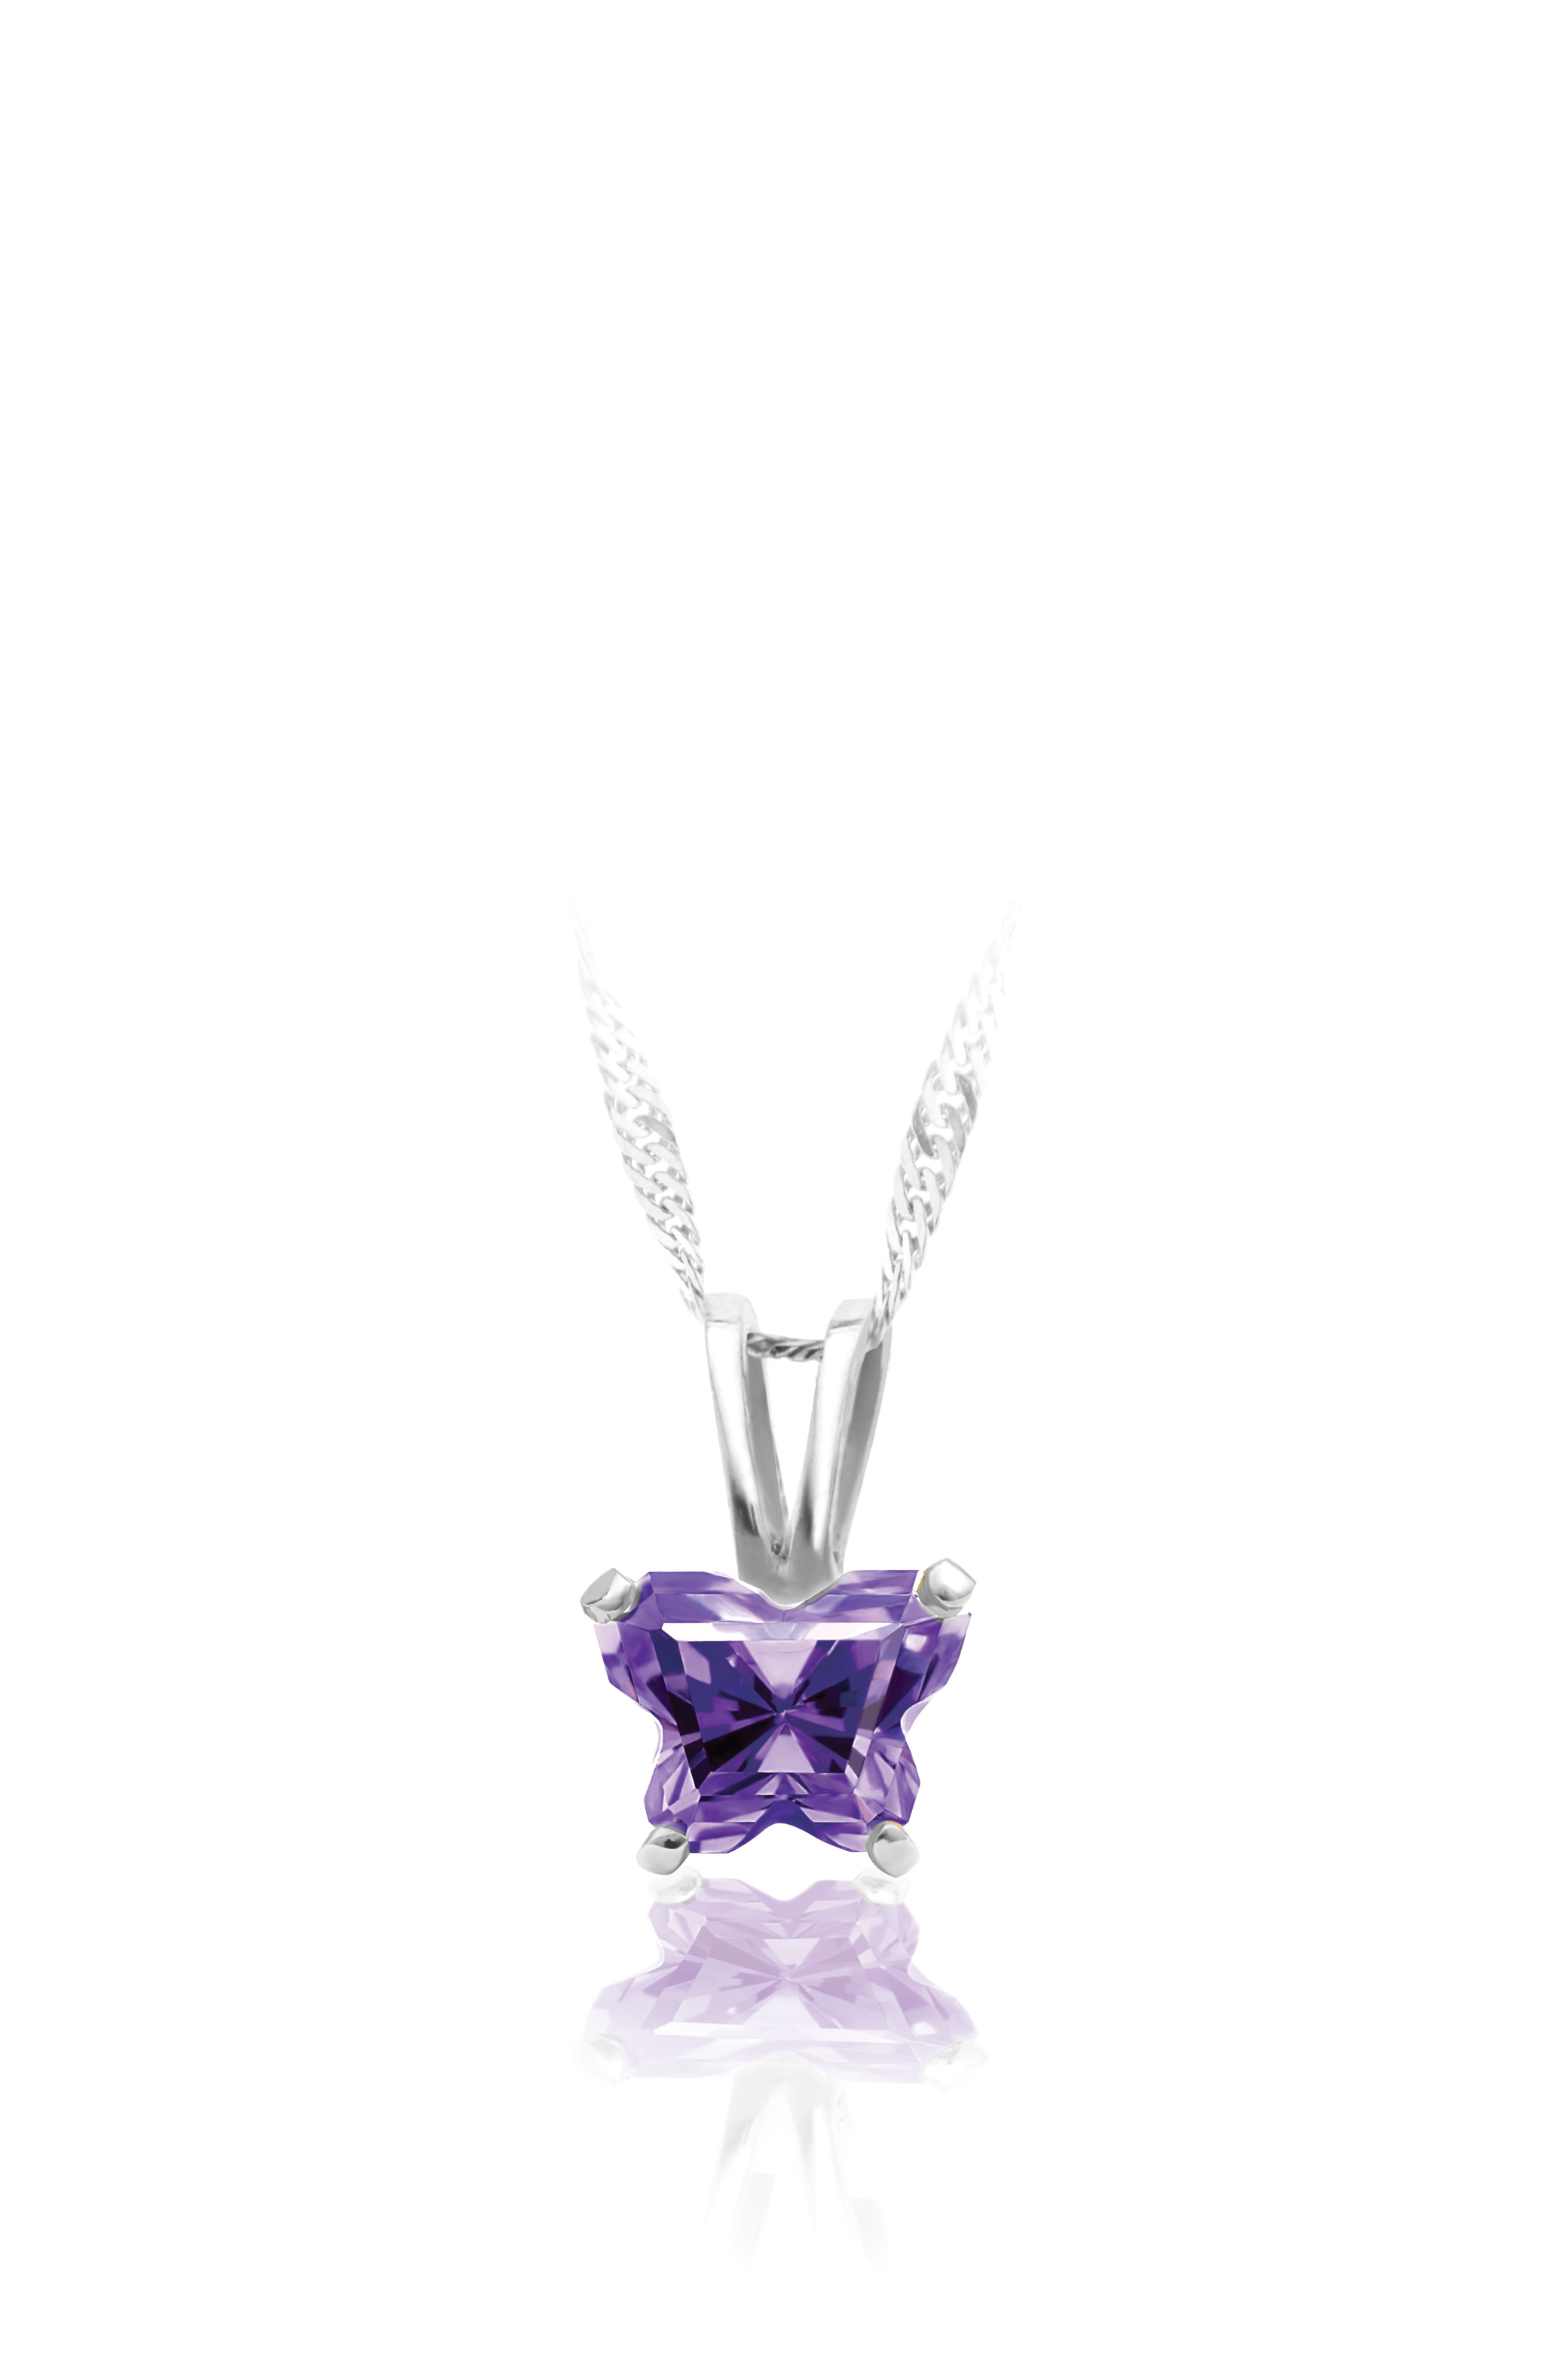 pendant for babies in sterling silver with purple cubic zirconia (month of February) - Chain included